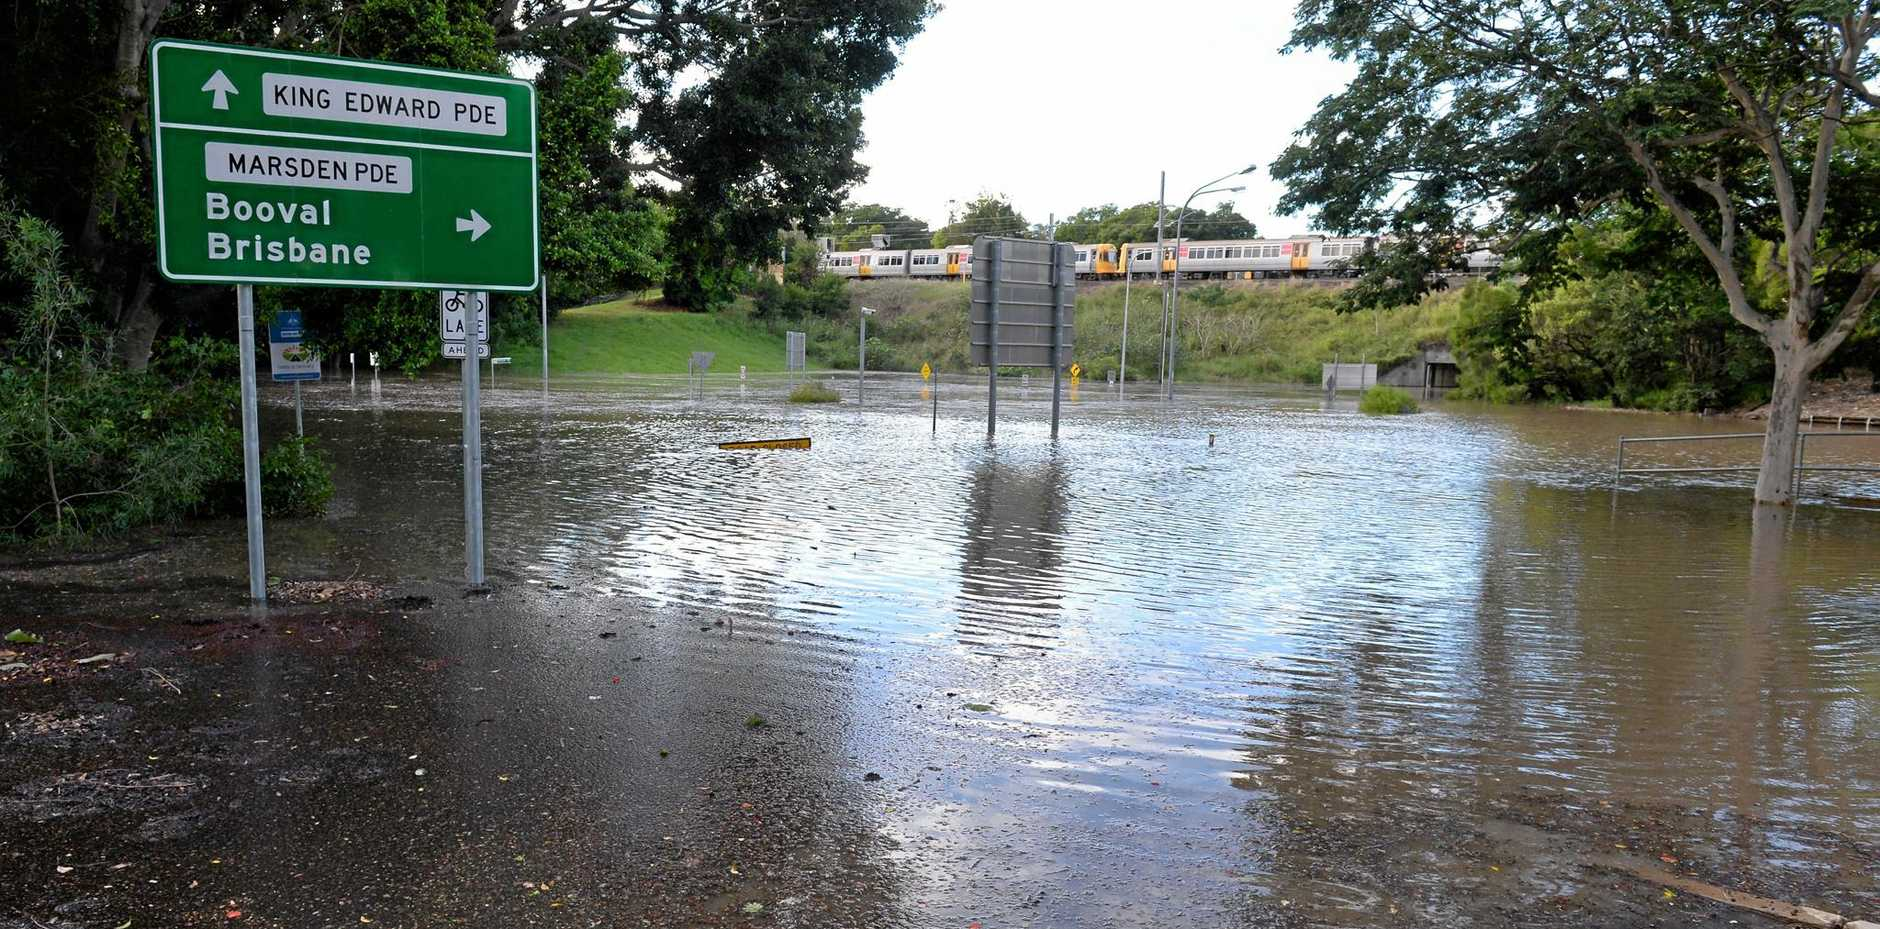 READY: Flooding in Ipswich at King Edward Parade. An emergency management pilot program that assists the city's most vulnerable is set to be rolled out by Ipswich City Council over the next 12 months.